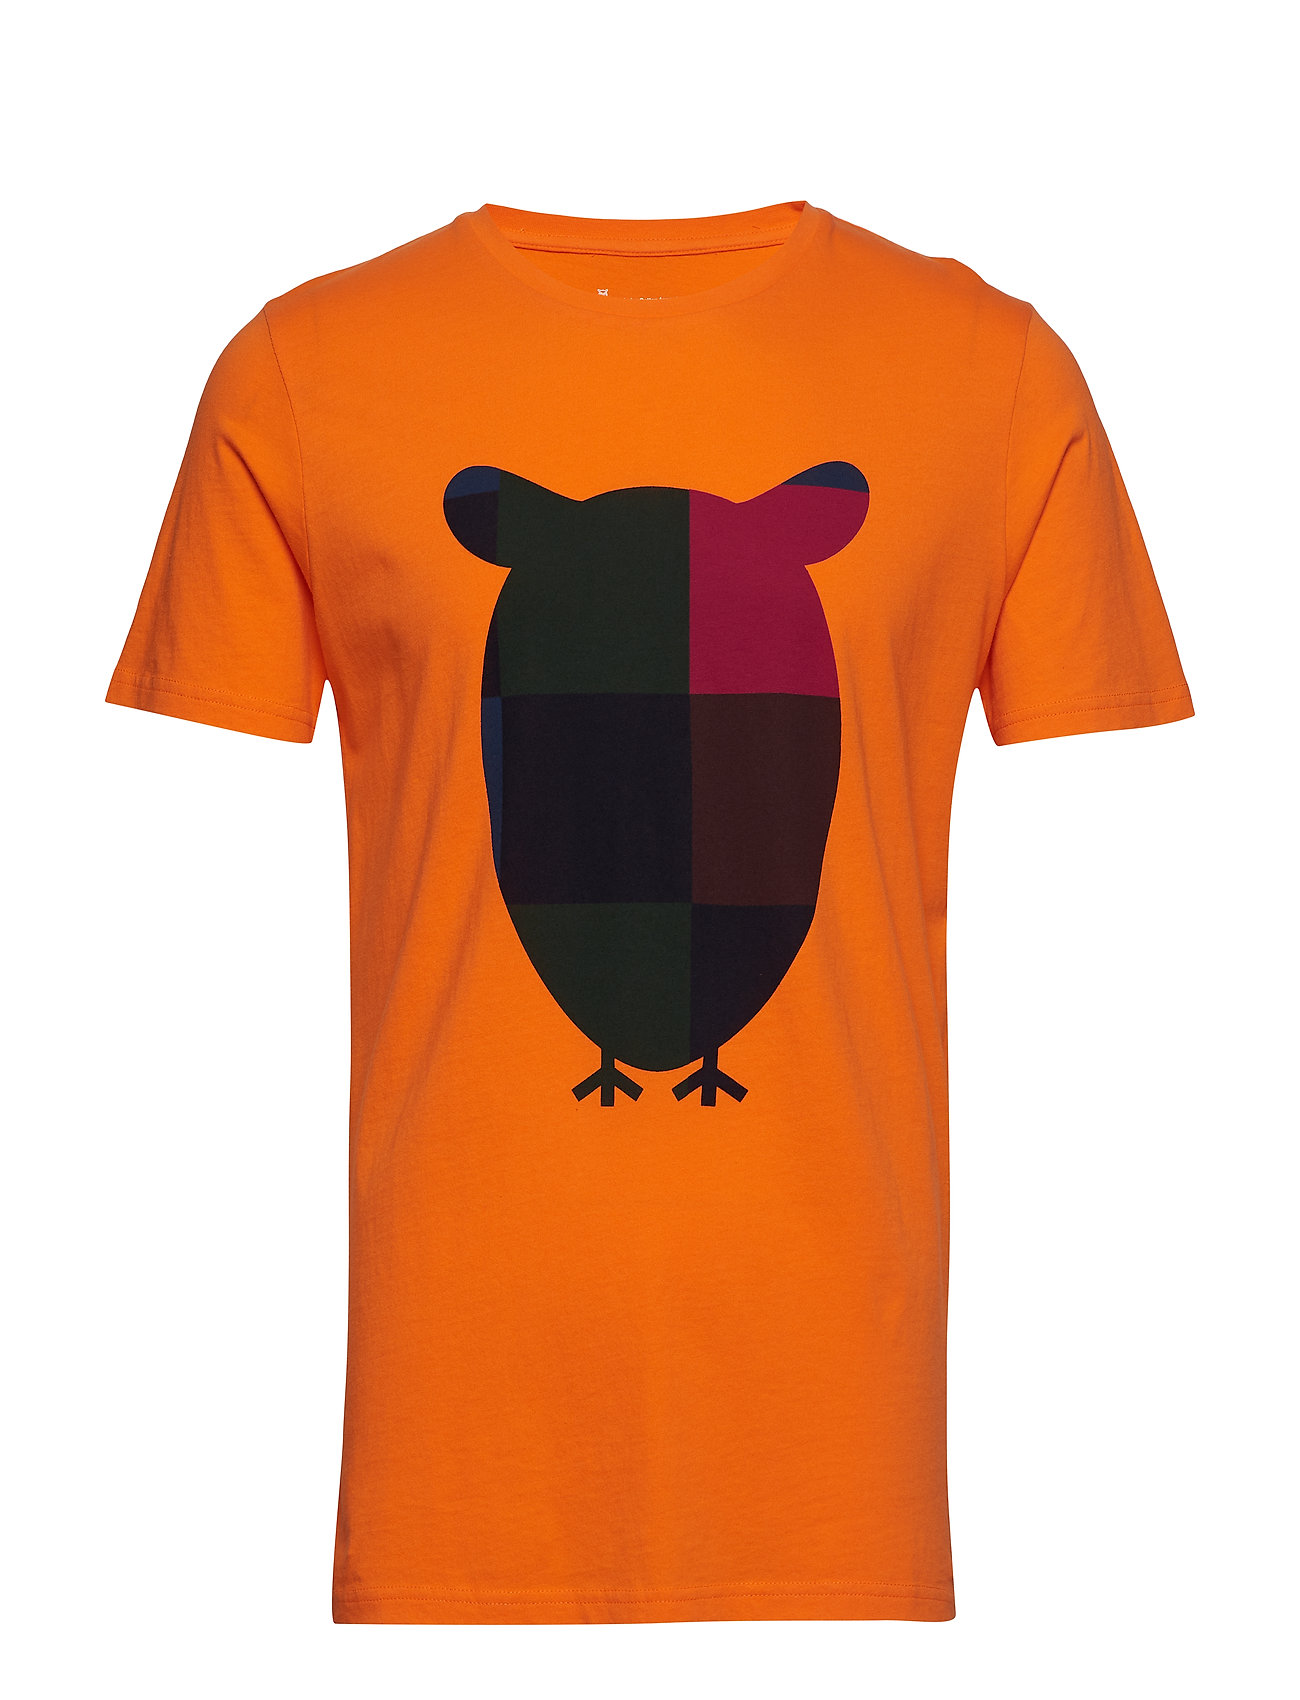 Image of T-Shirt With Big Owl Print - Gots/V T-shirt Orange Knowledge Cotton Apparel (3203599923)